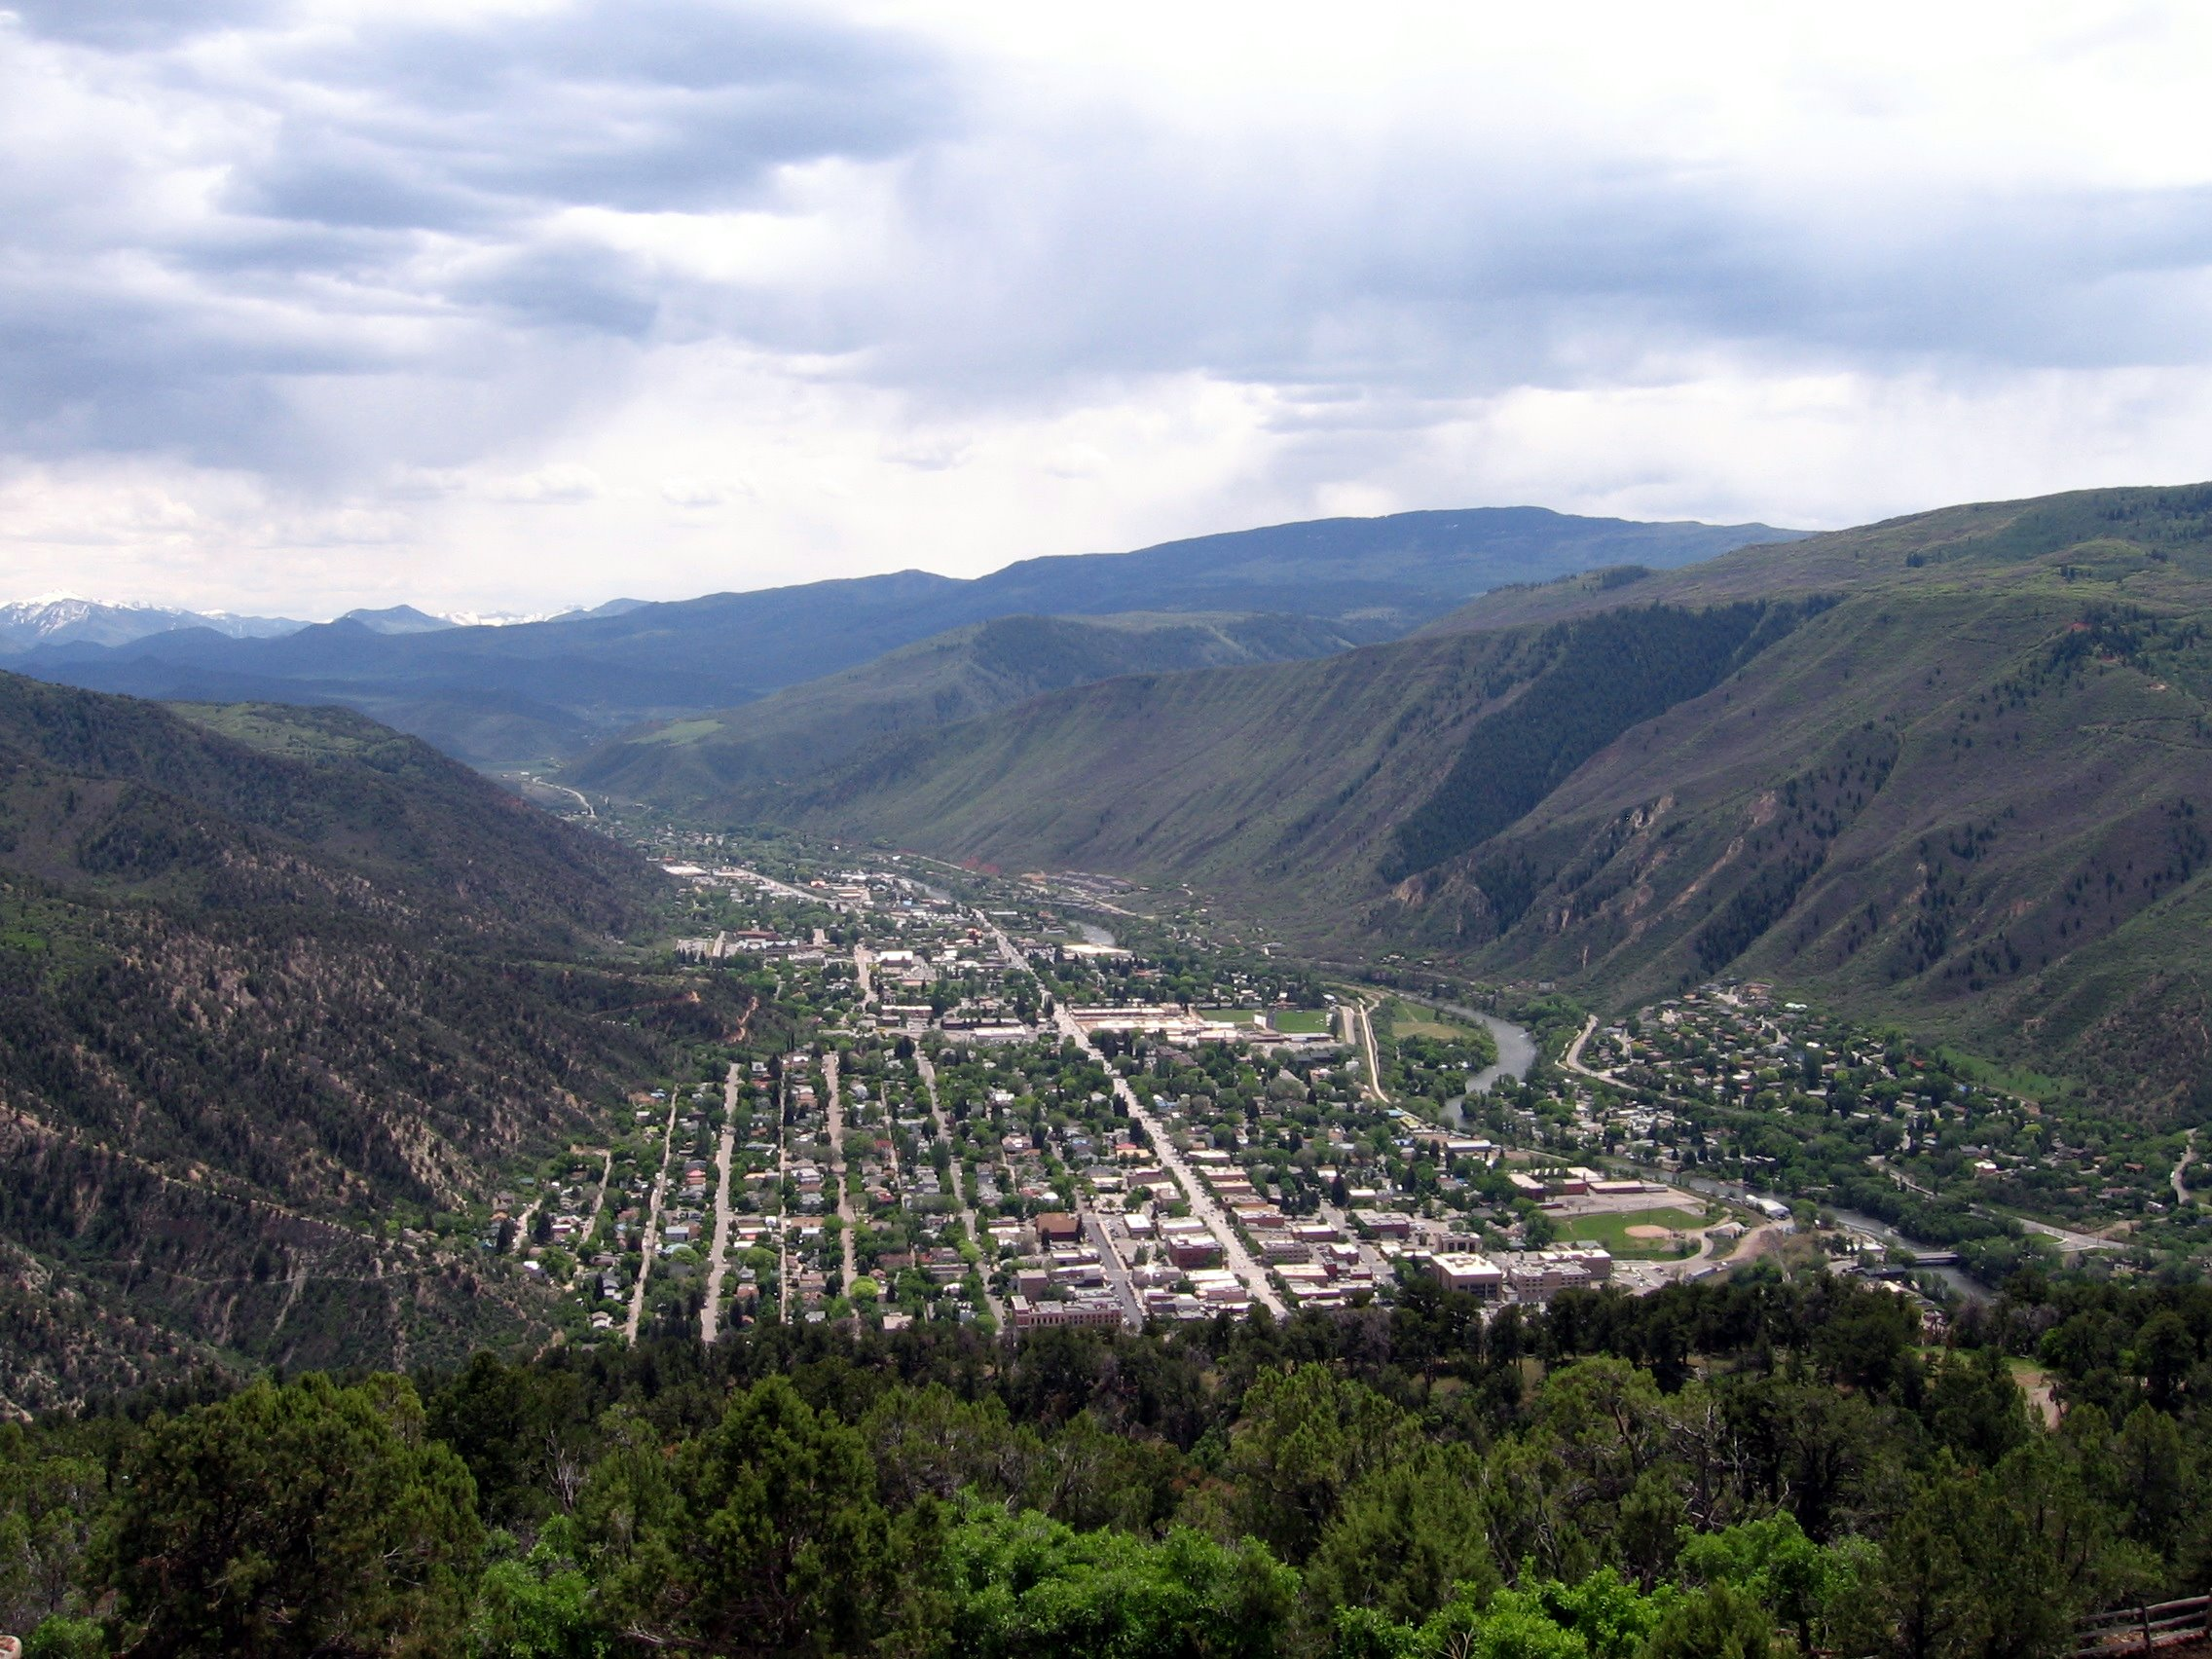 Glenwood Springs (Colorado)